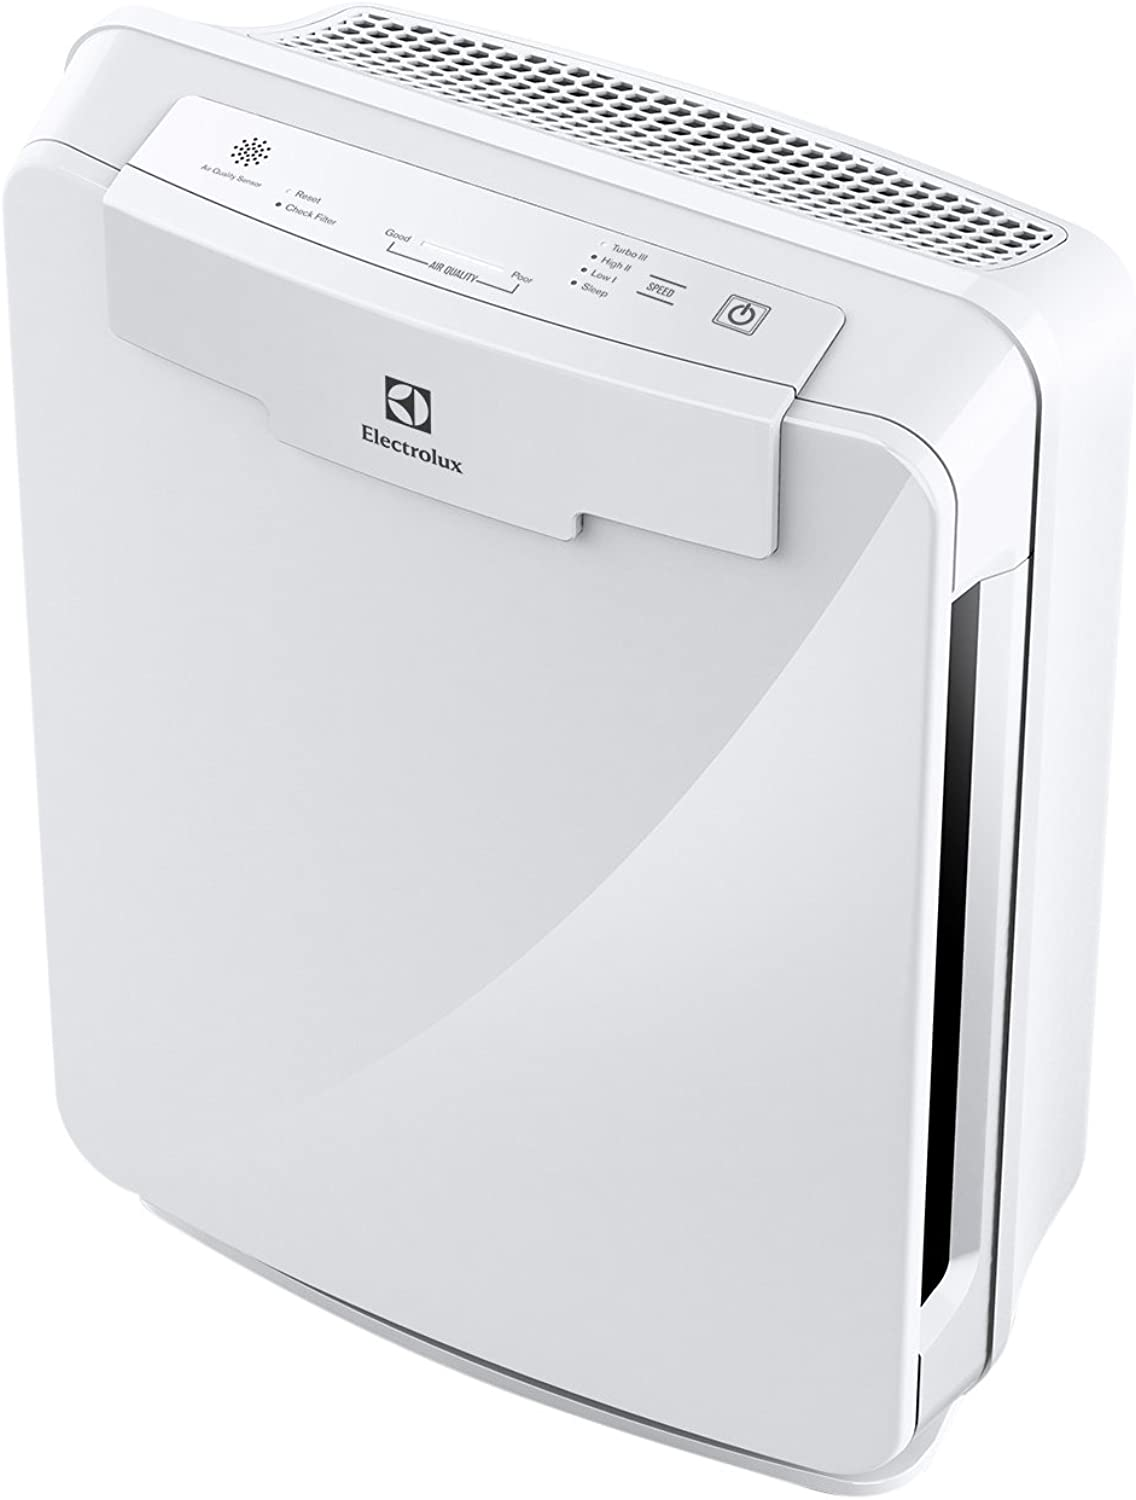 Electrolux PureOxygen Allergy 150 HEPA 4 Stage-Filtration Air Cleaner   Air Purifier, White